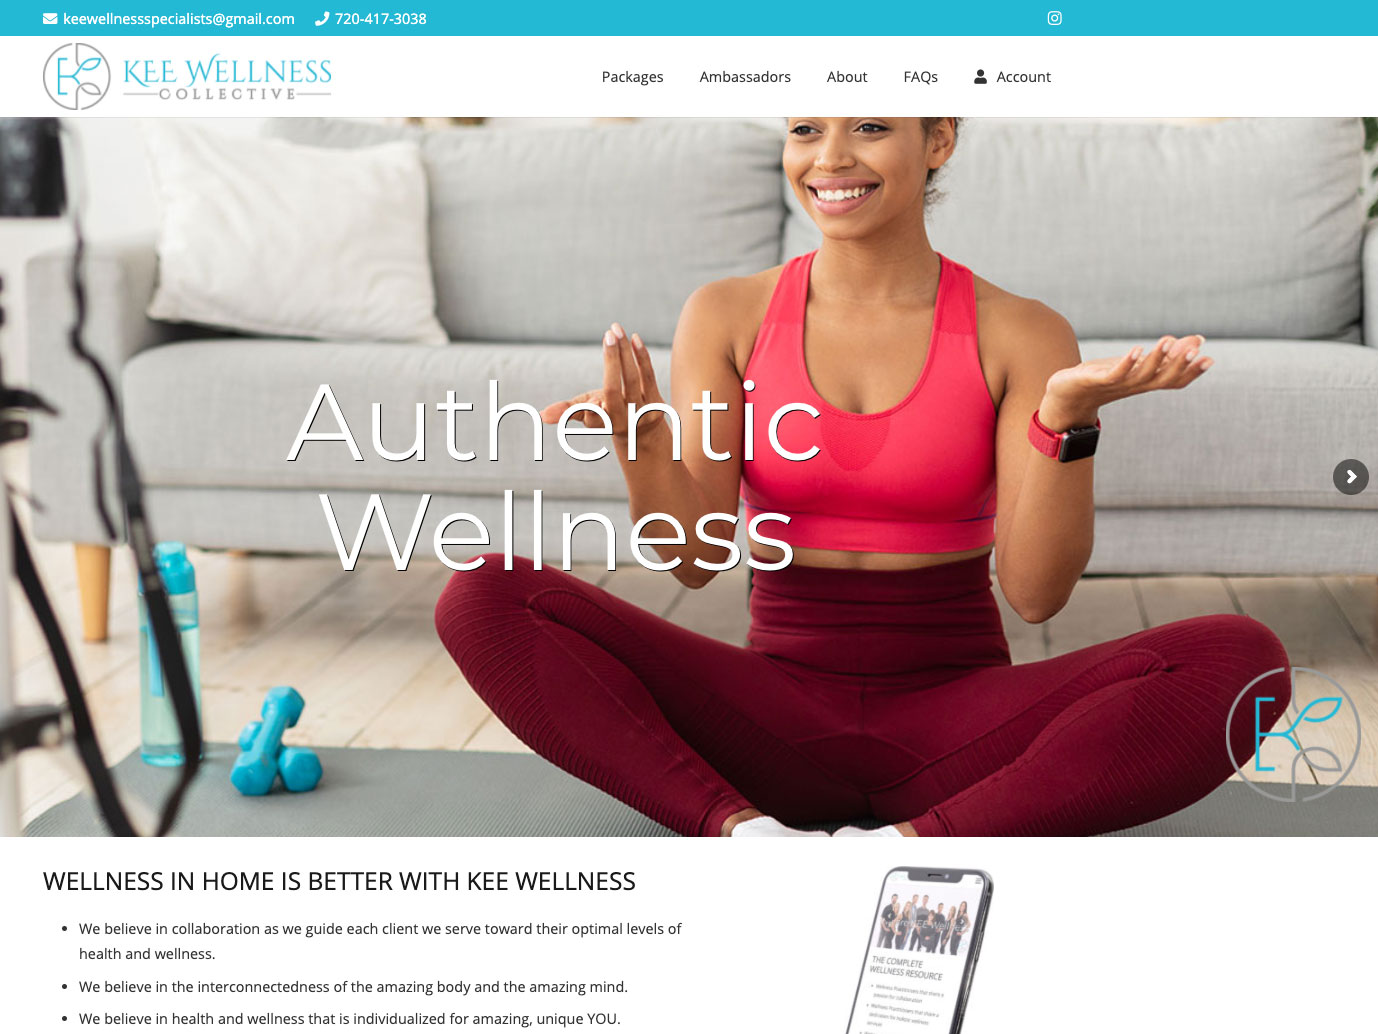 KEE Wellness Collective